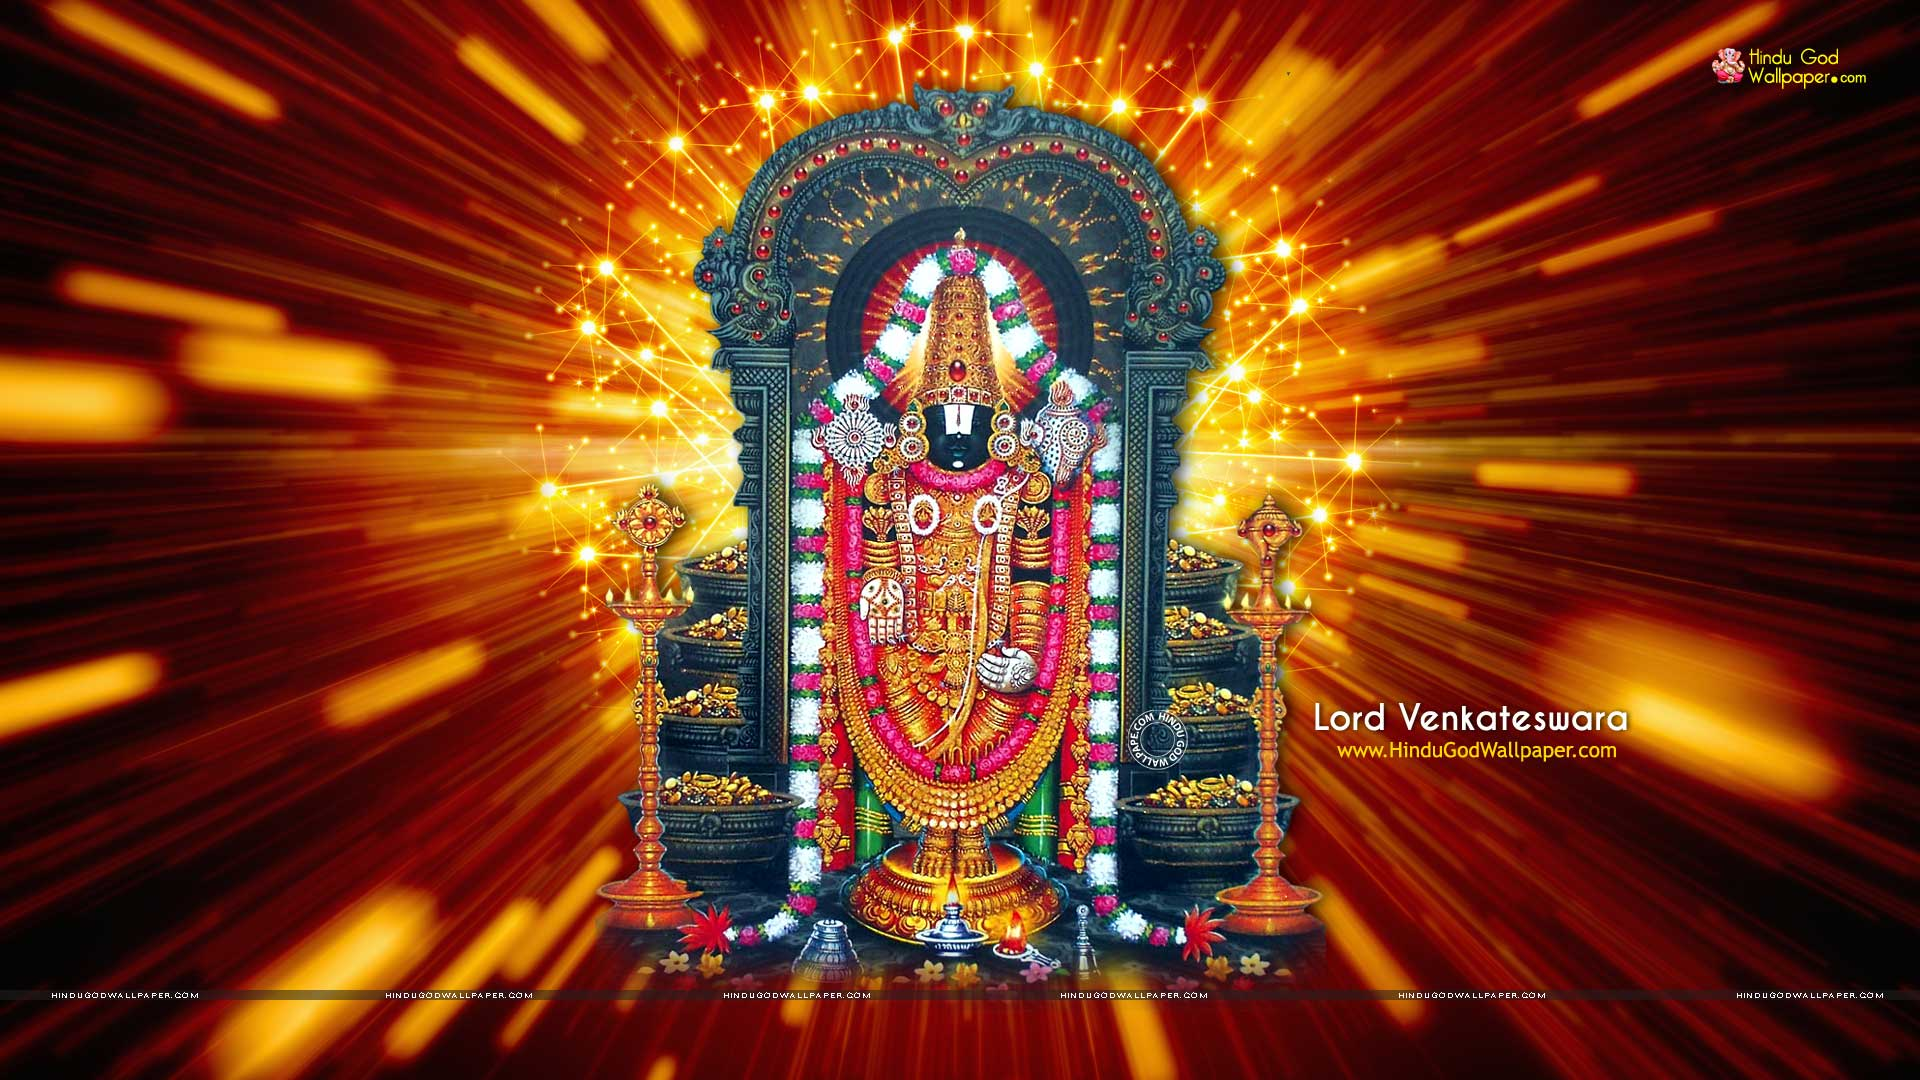 1080p Lord Venkateswara Hd Wallpapers Free Download